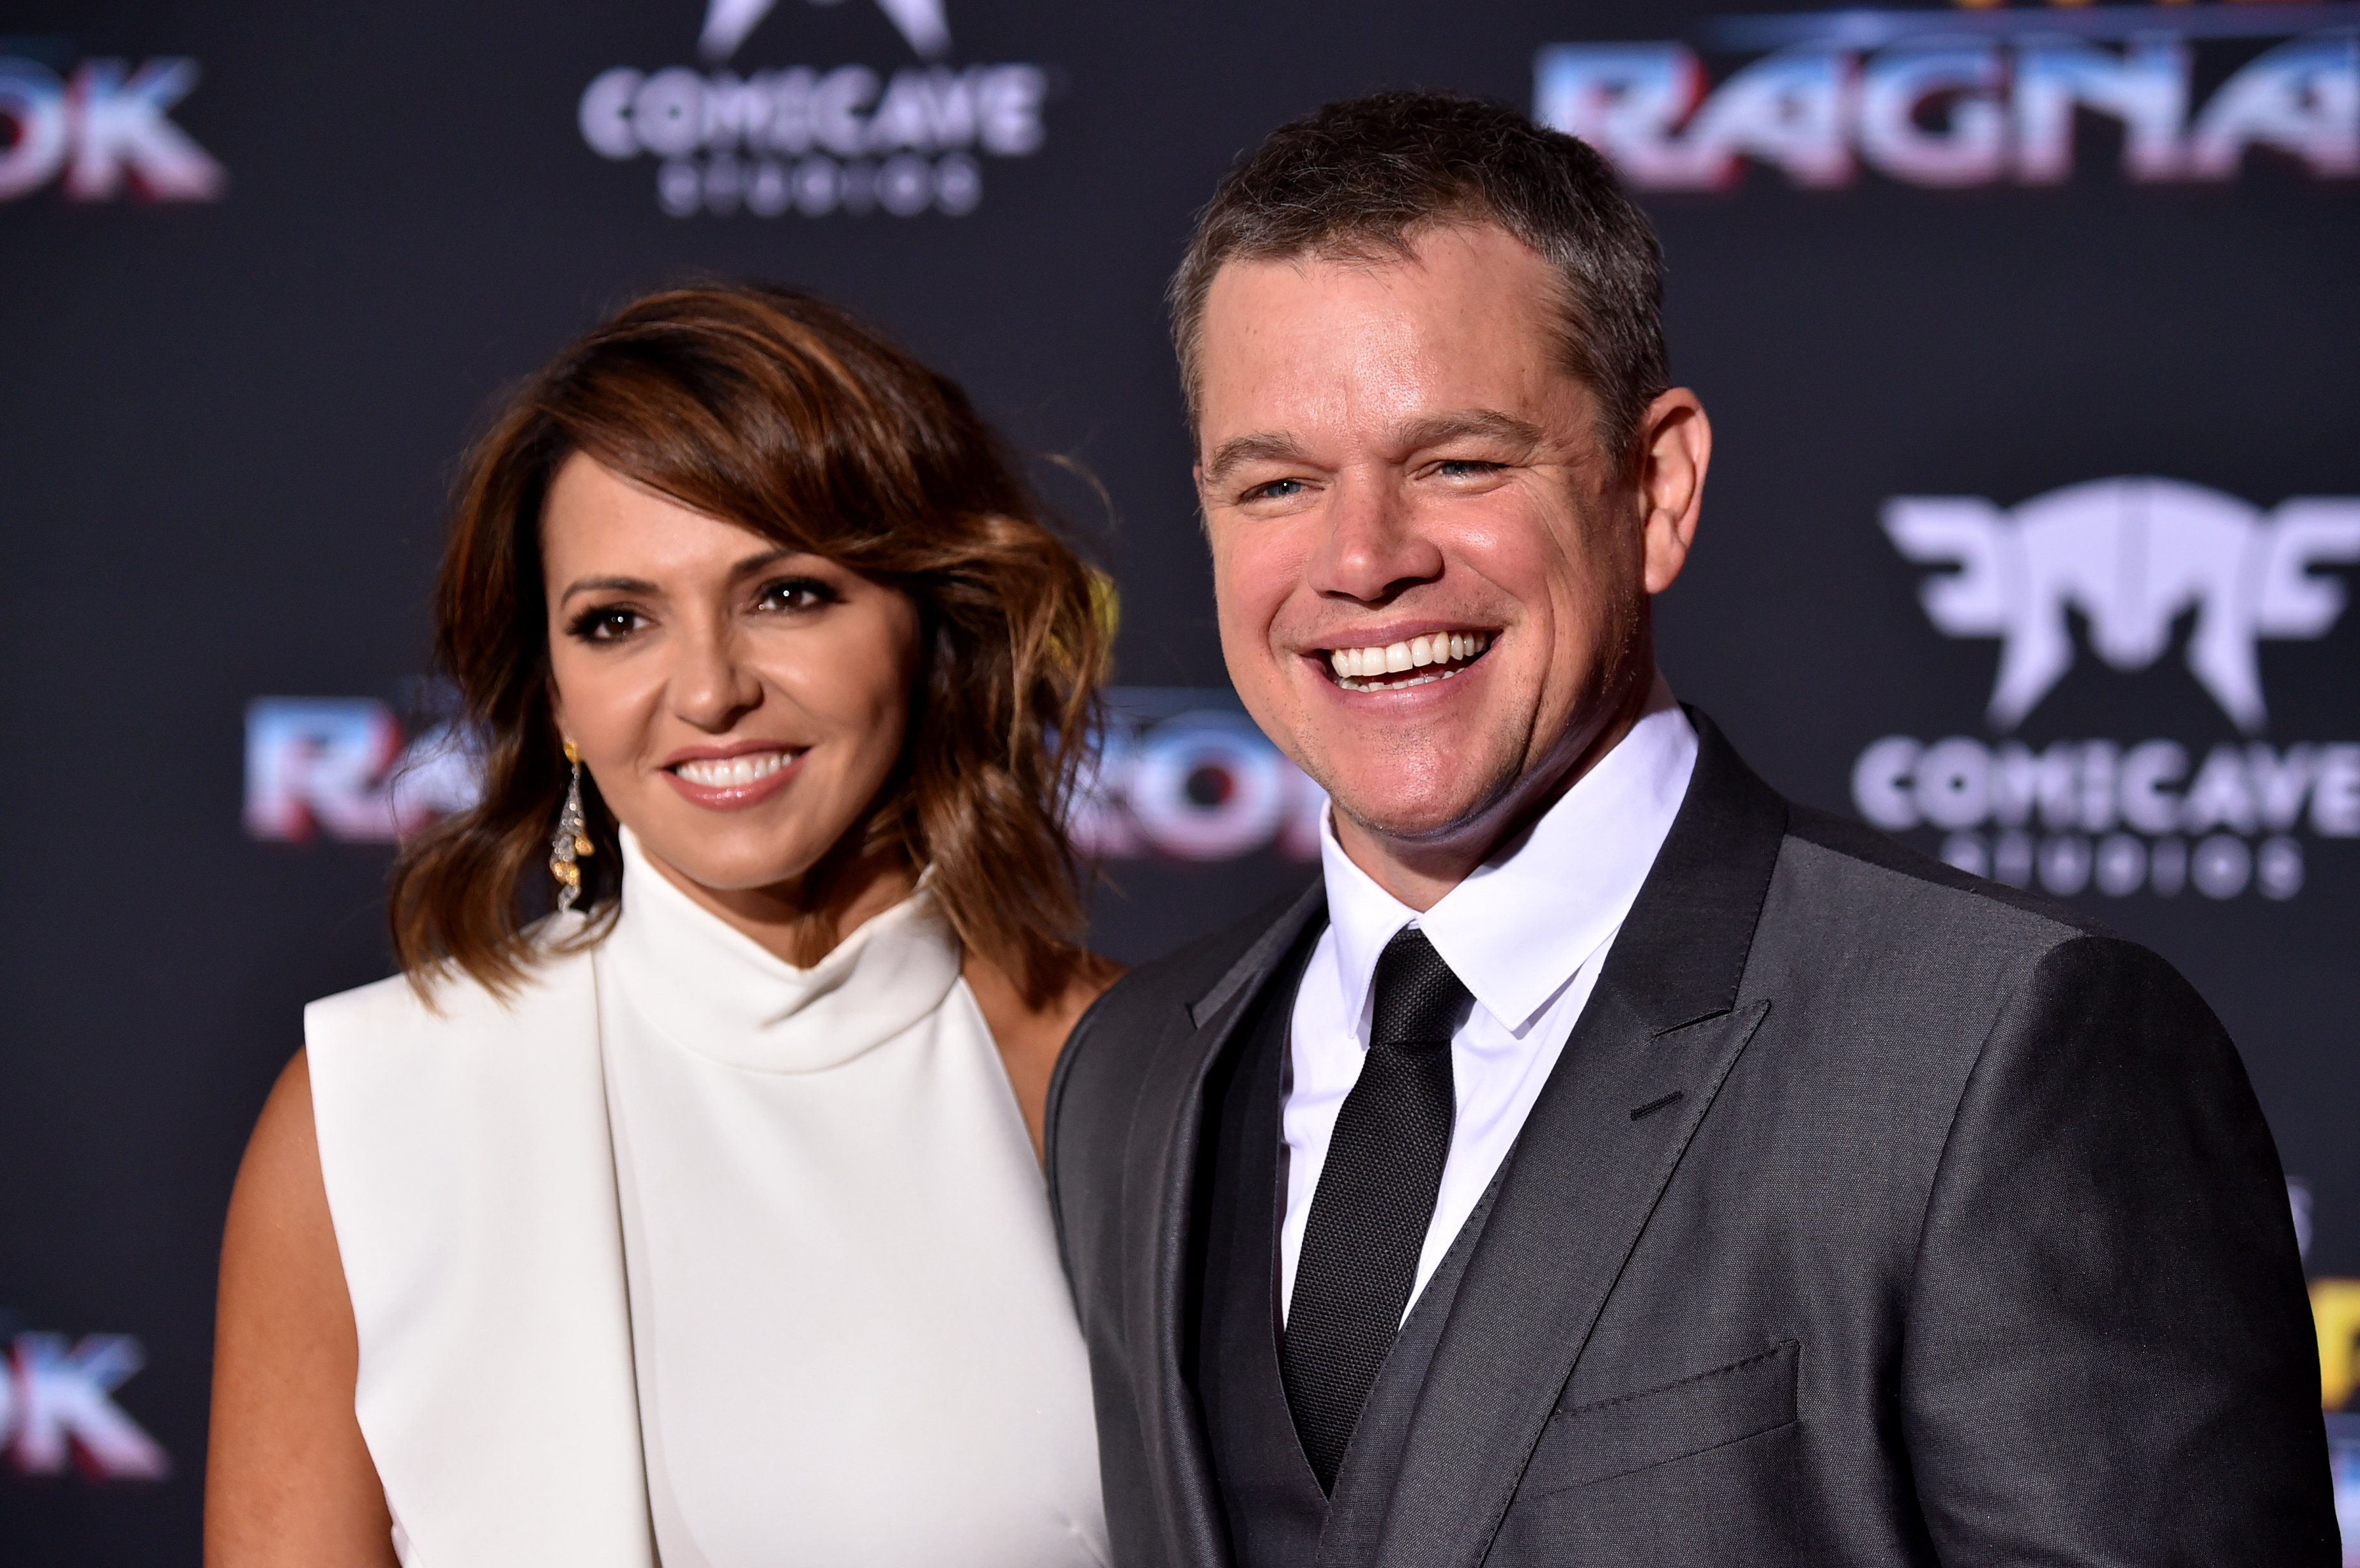 """Matt Damon, Luciana Barroso arrive at the Premiere Of Disney And Marvel's """"Thor: Ragnarok"""" - Arrivals on October 10, 2017 in Los Angeles, California 